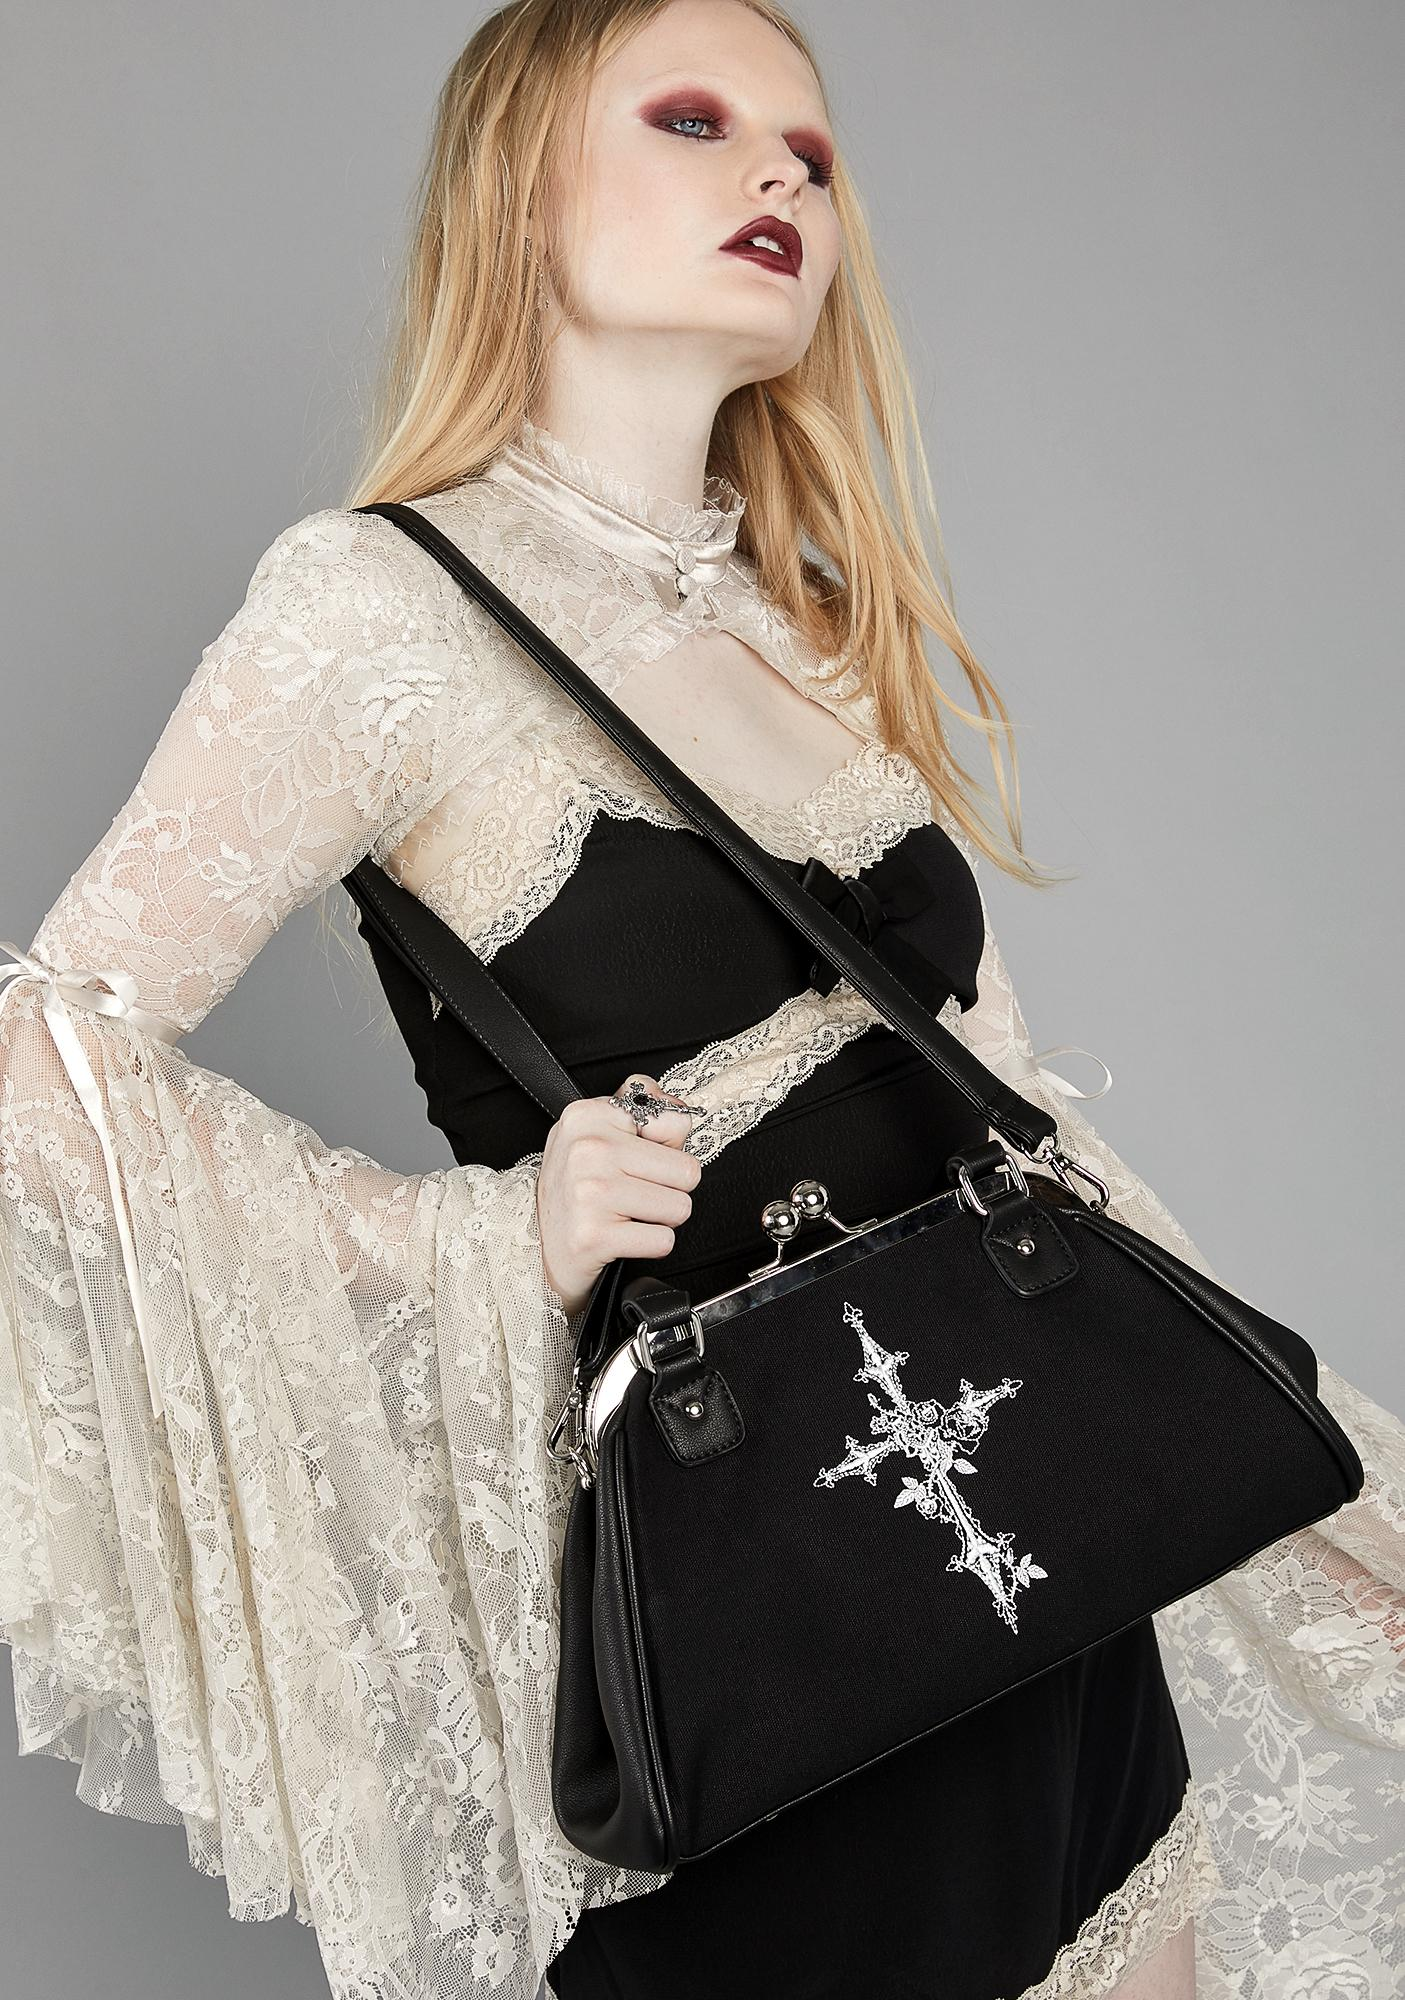 Widow Post-Mortem Granny Purse